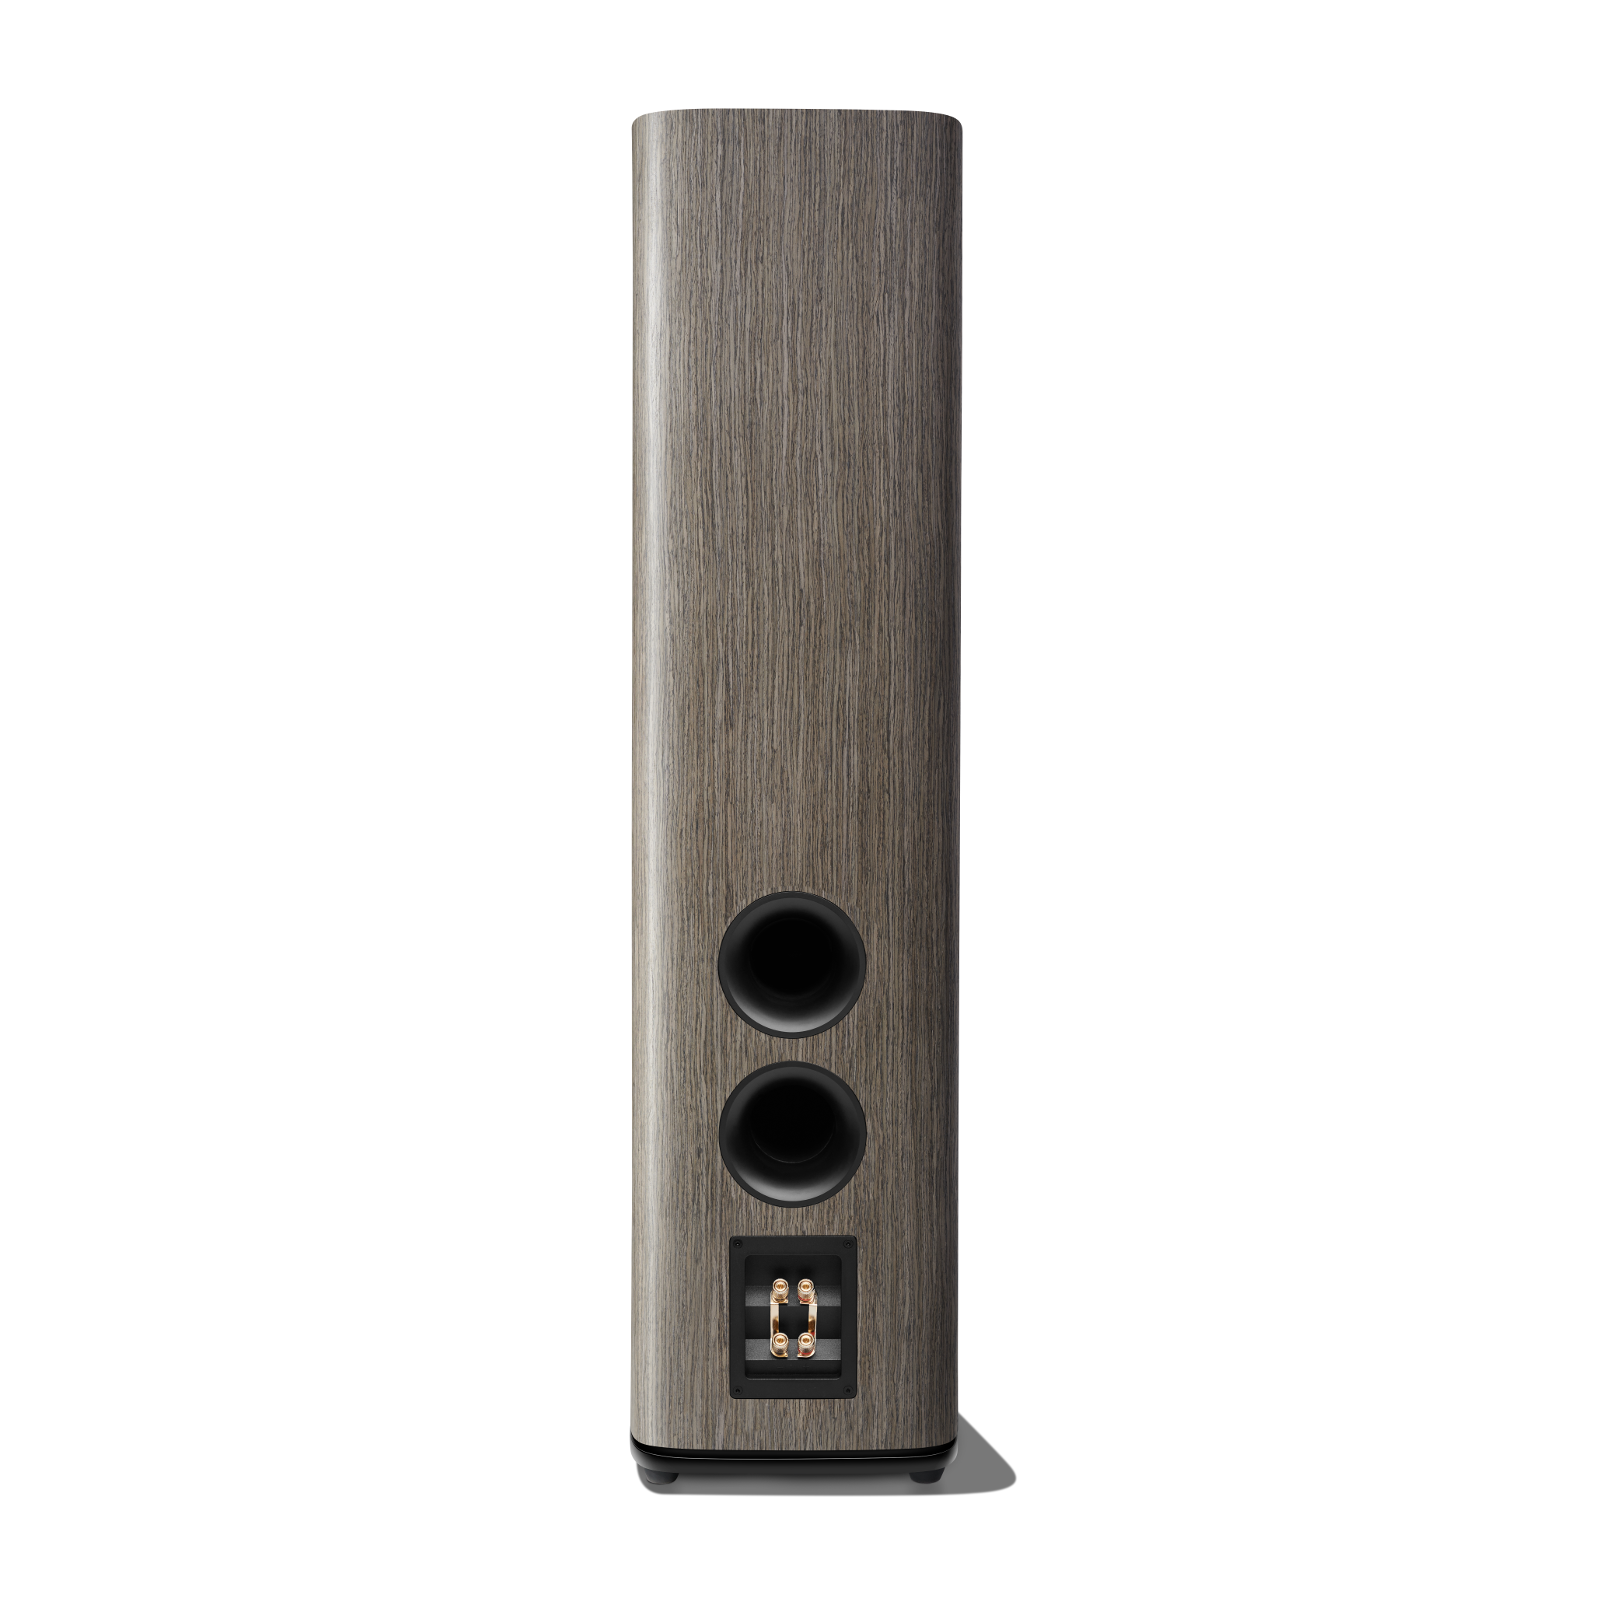 HDI-3600 - Grey Oak - 2 ½-way Triple 6.5-inch (165mm) Floorstanding Loudspeaker - Back